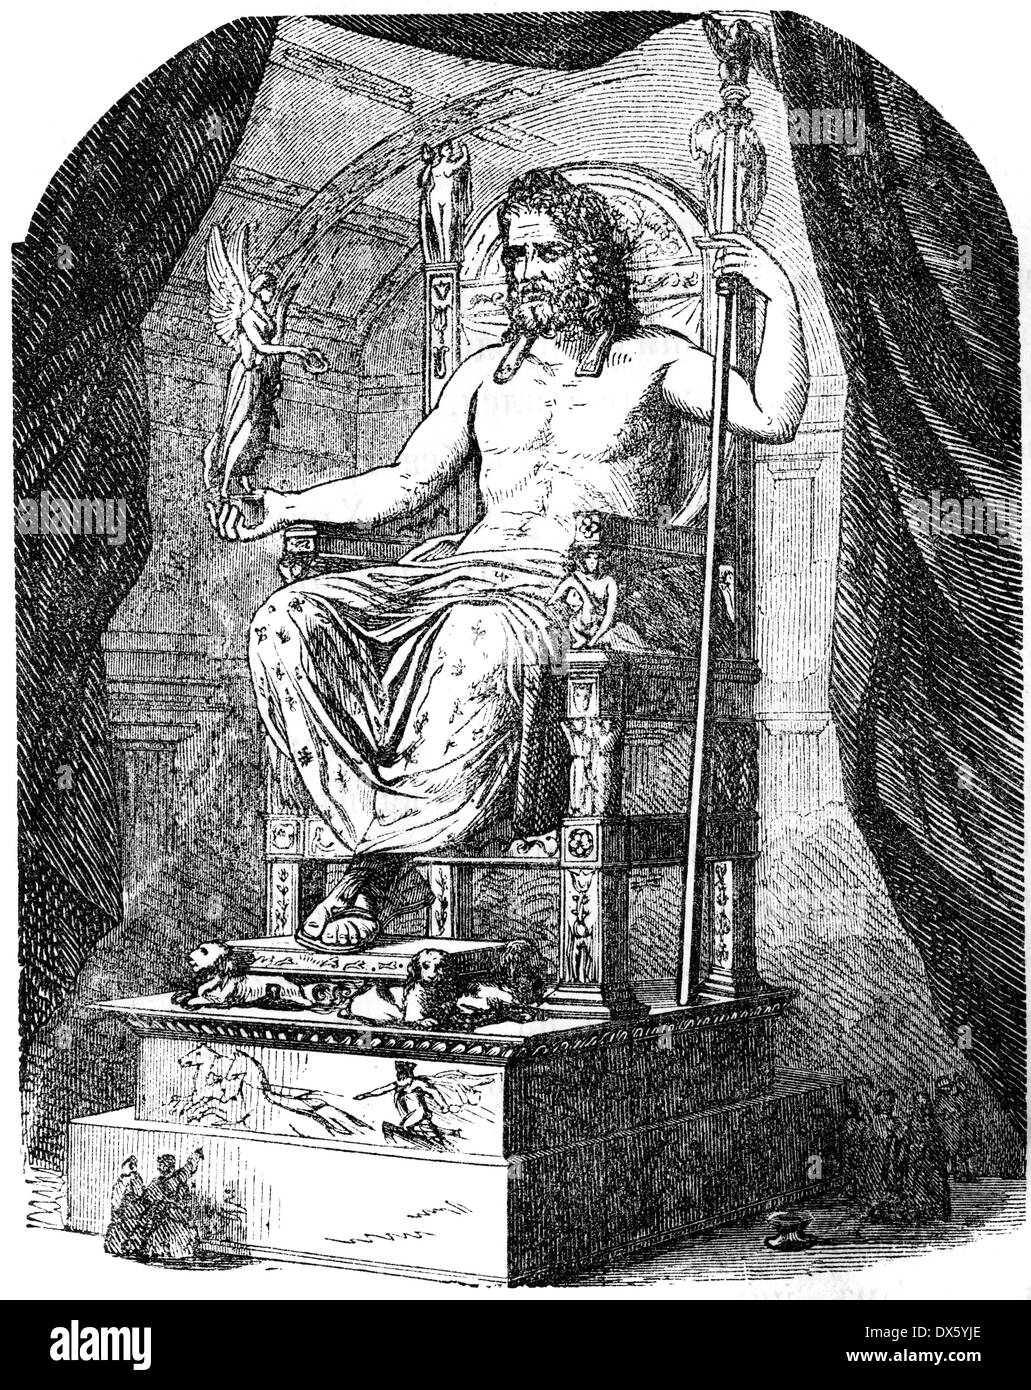 Olympian Zeus statue, illustration from book dated 1878 - Stock Image